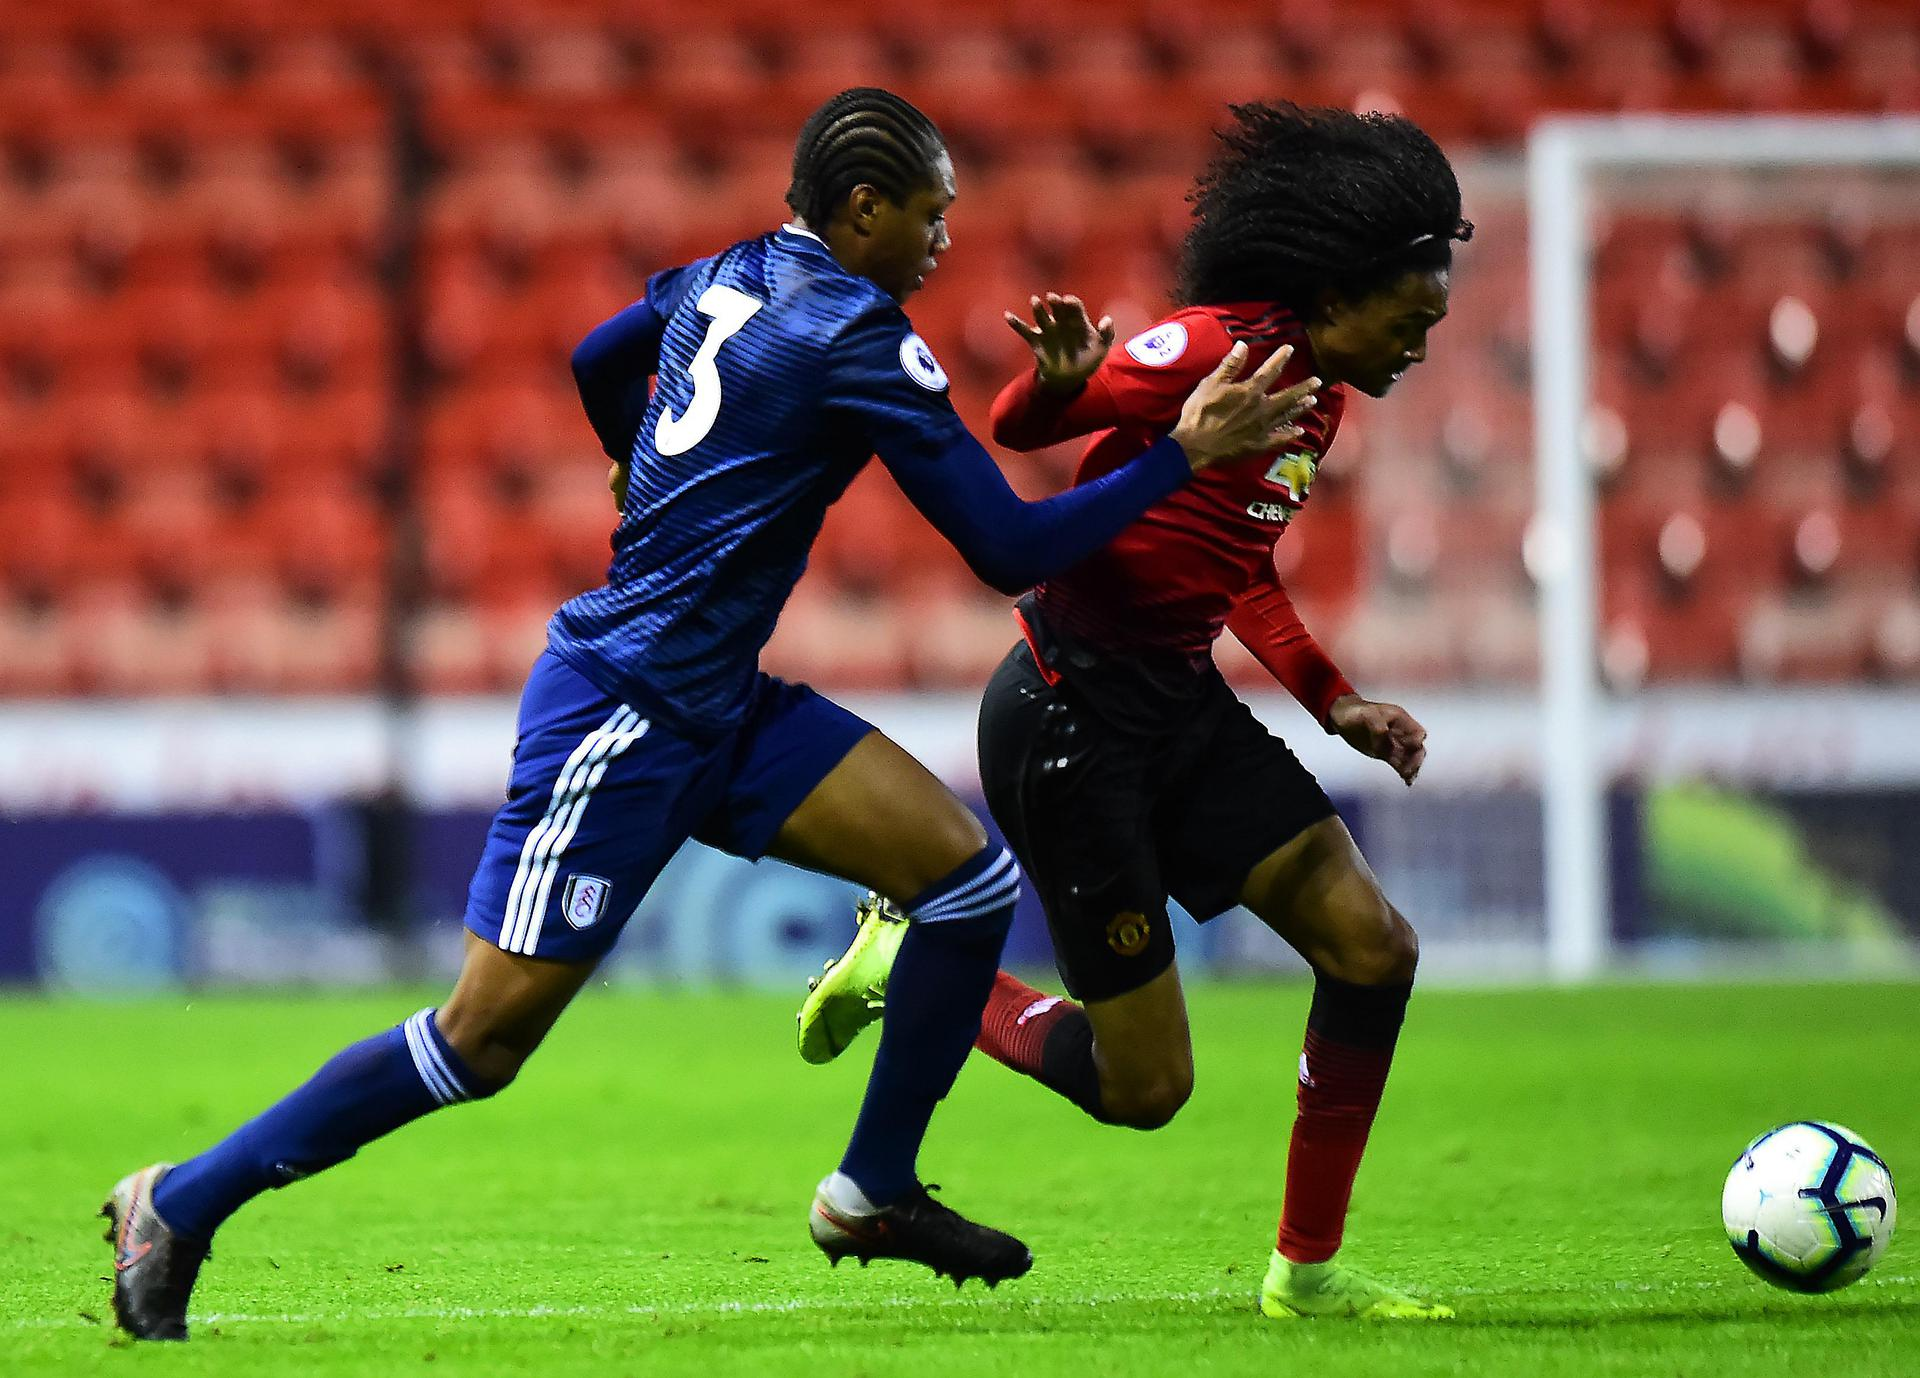 Tahith Chong accelerates past his marker.